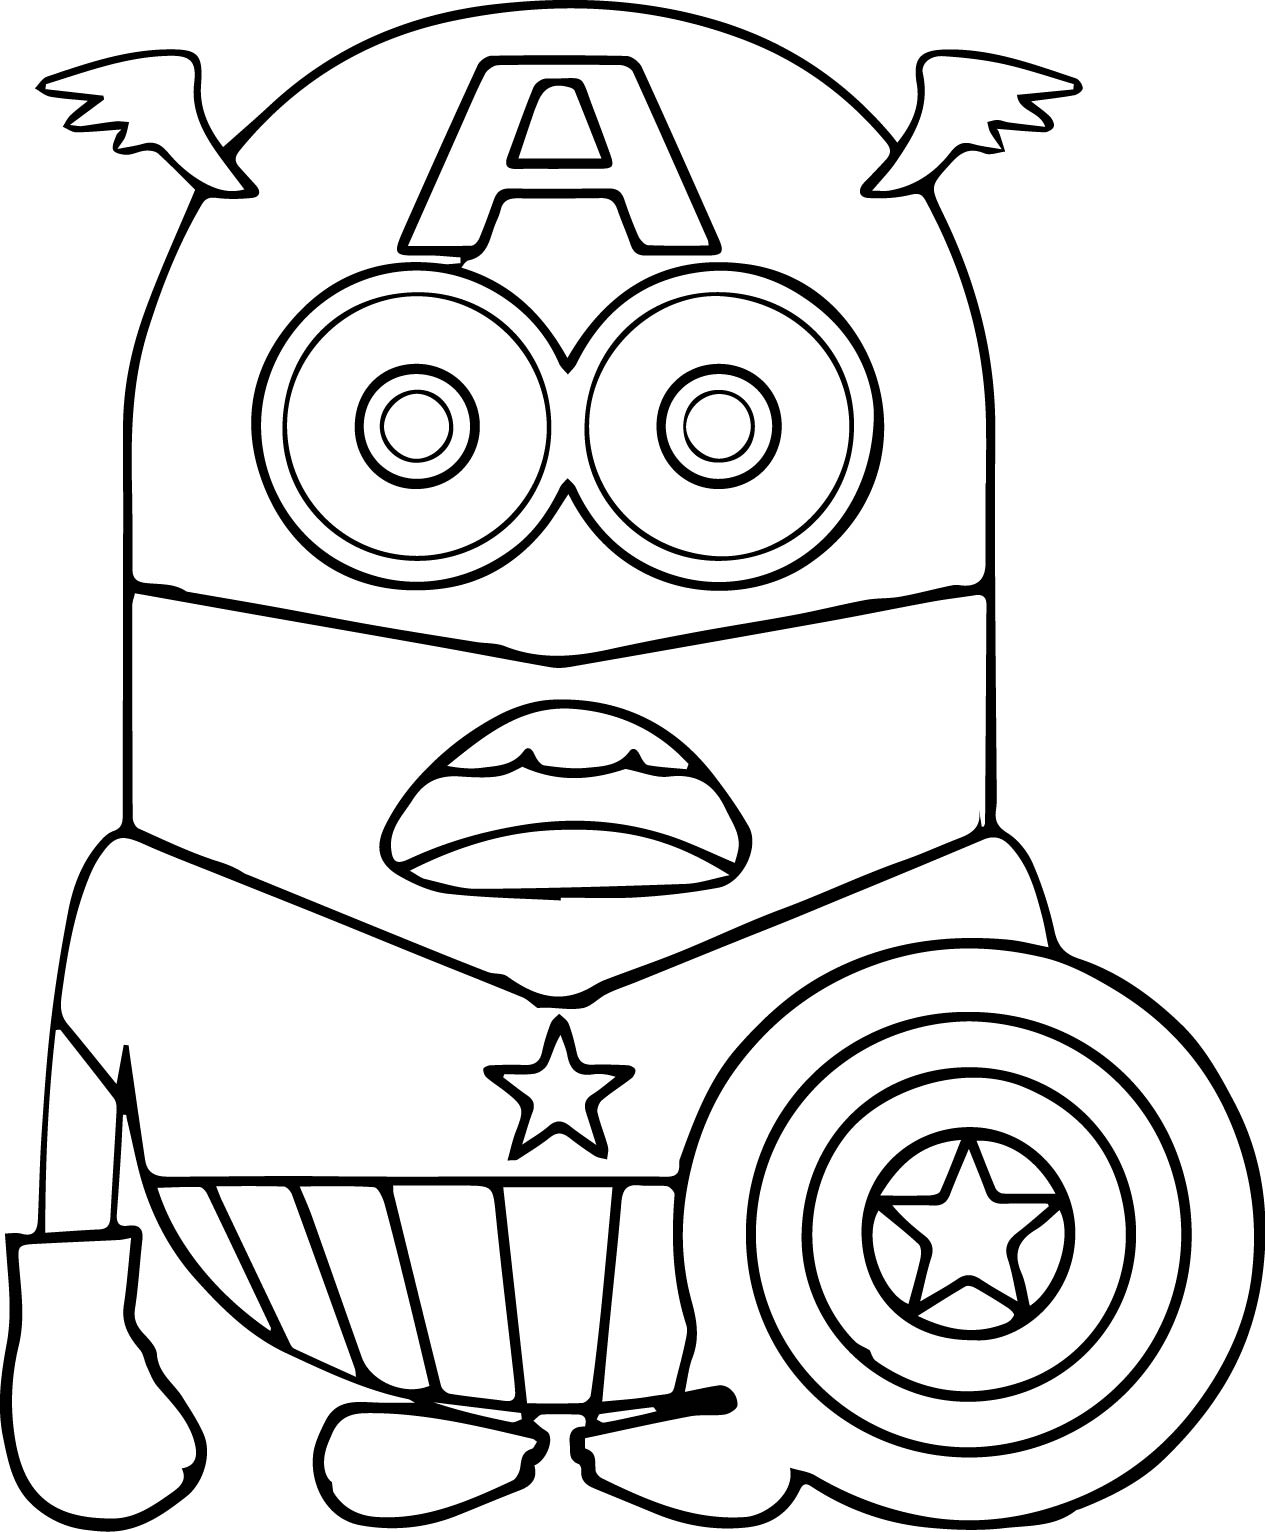 1265x1532 Minion Coloring Pages Bob Download